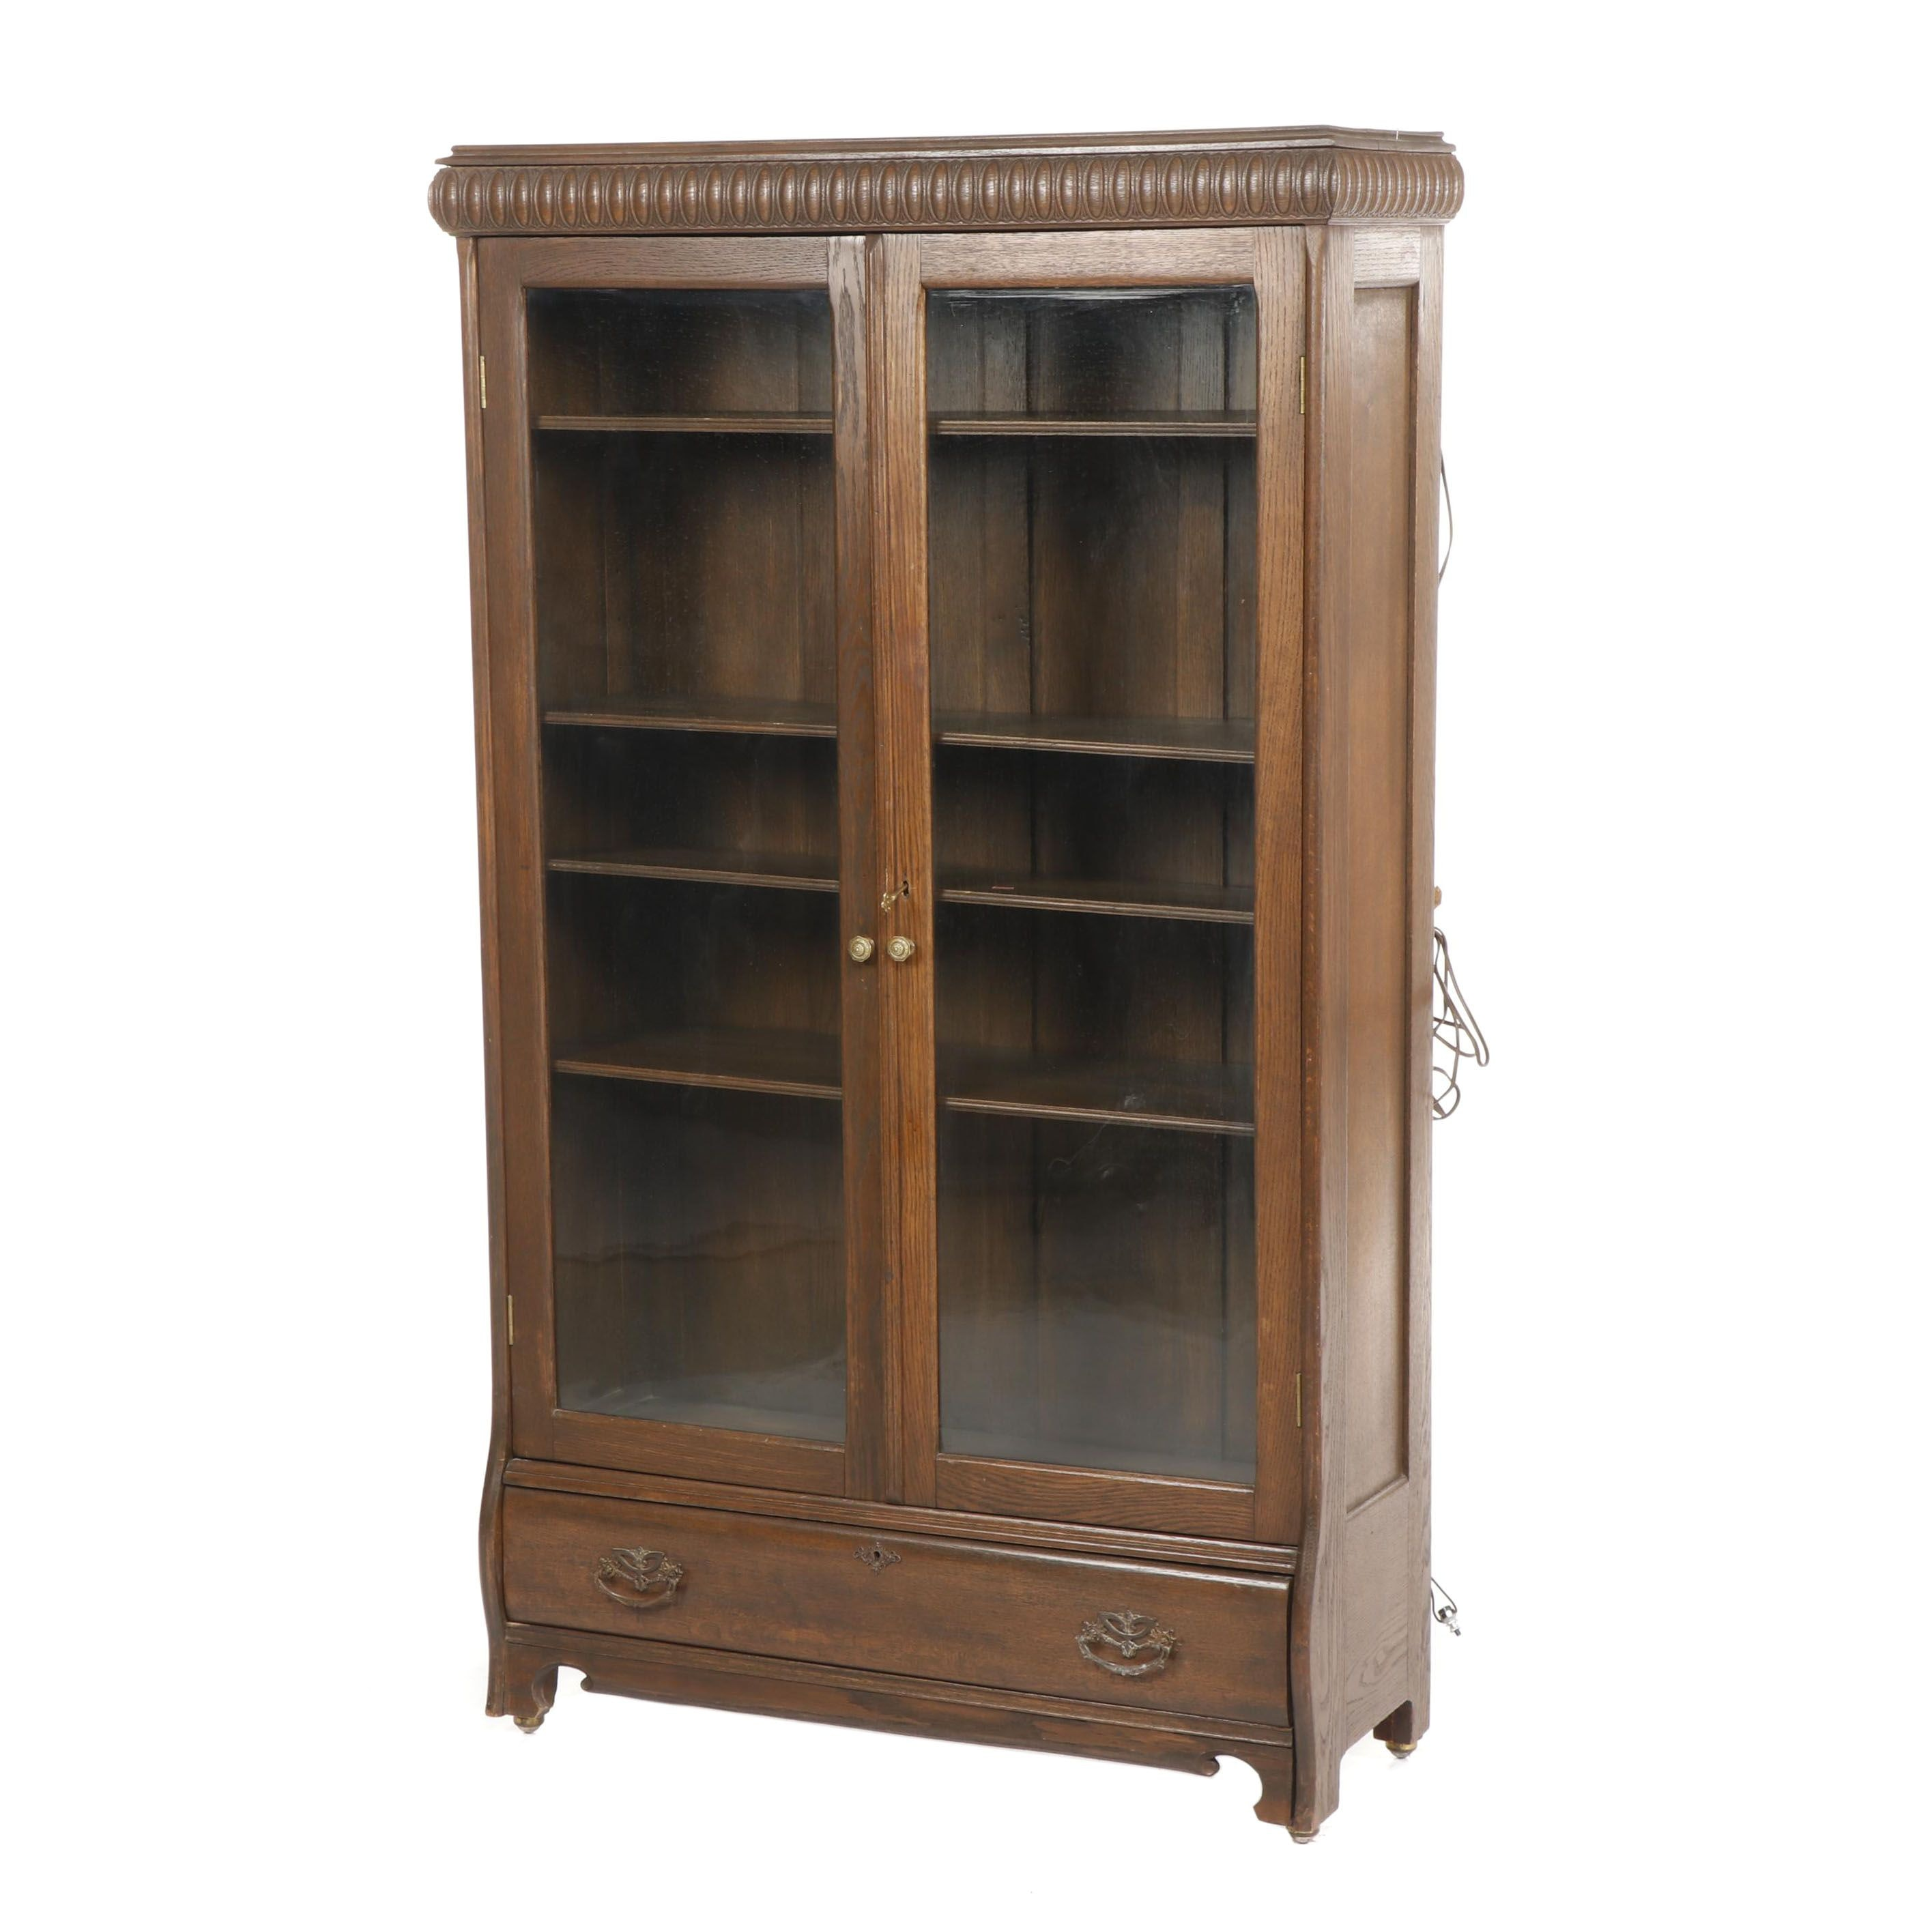 Victorian Style Oak Illuminated Display Cabinet with Drawer on Casters, 20th C.